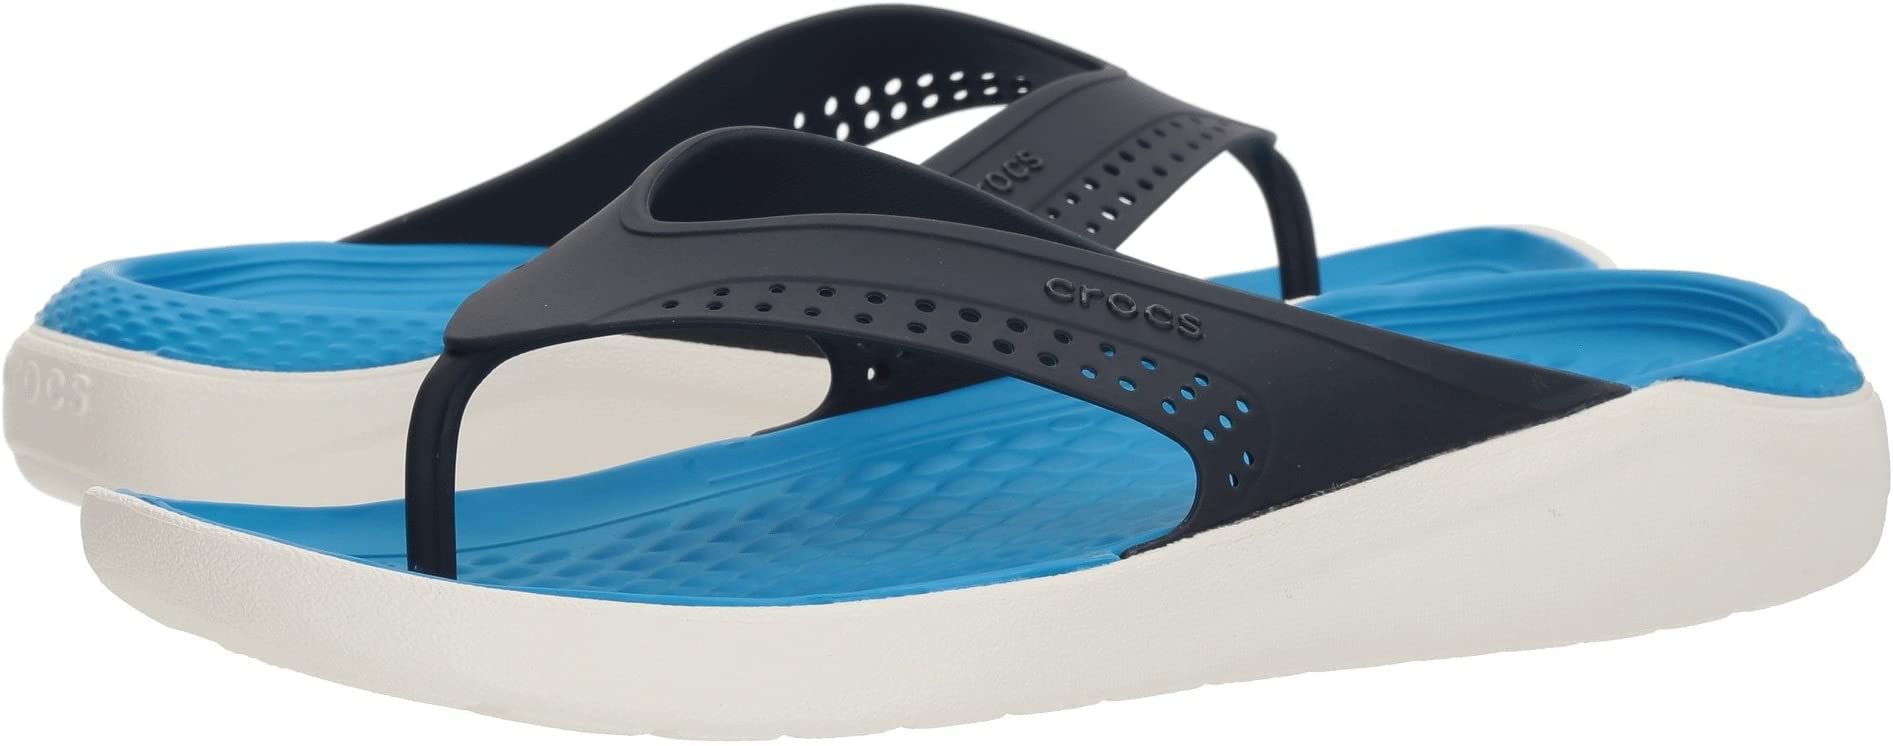 ff8fff4c6d11 TC-2-Sandals-Crocs-2019-7-01